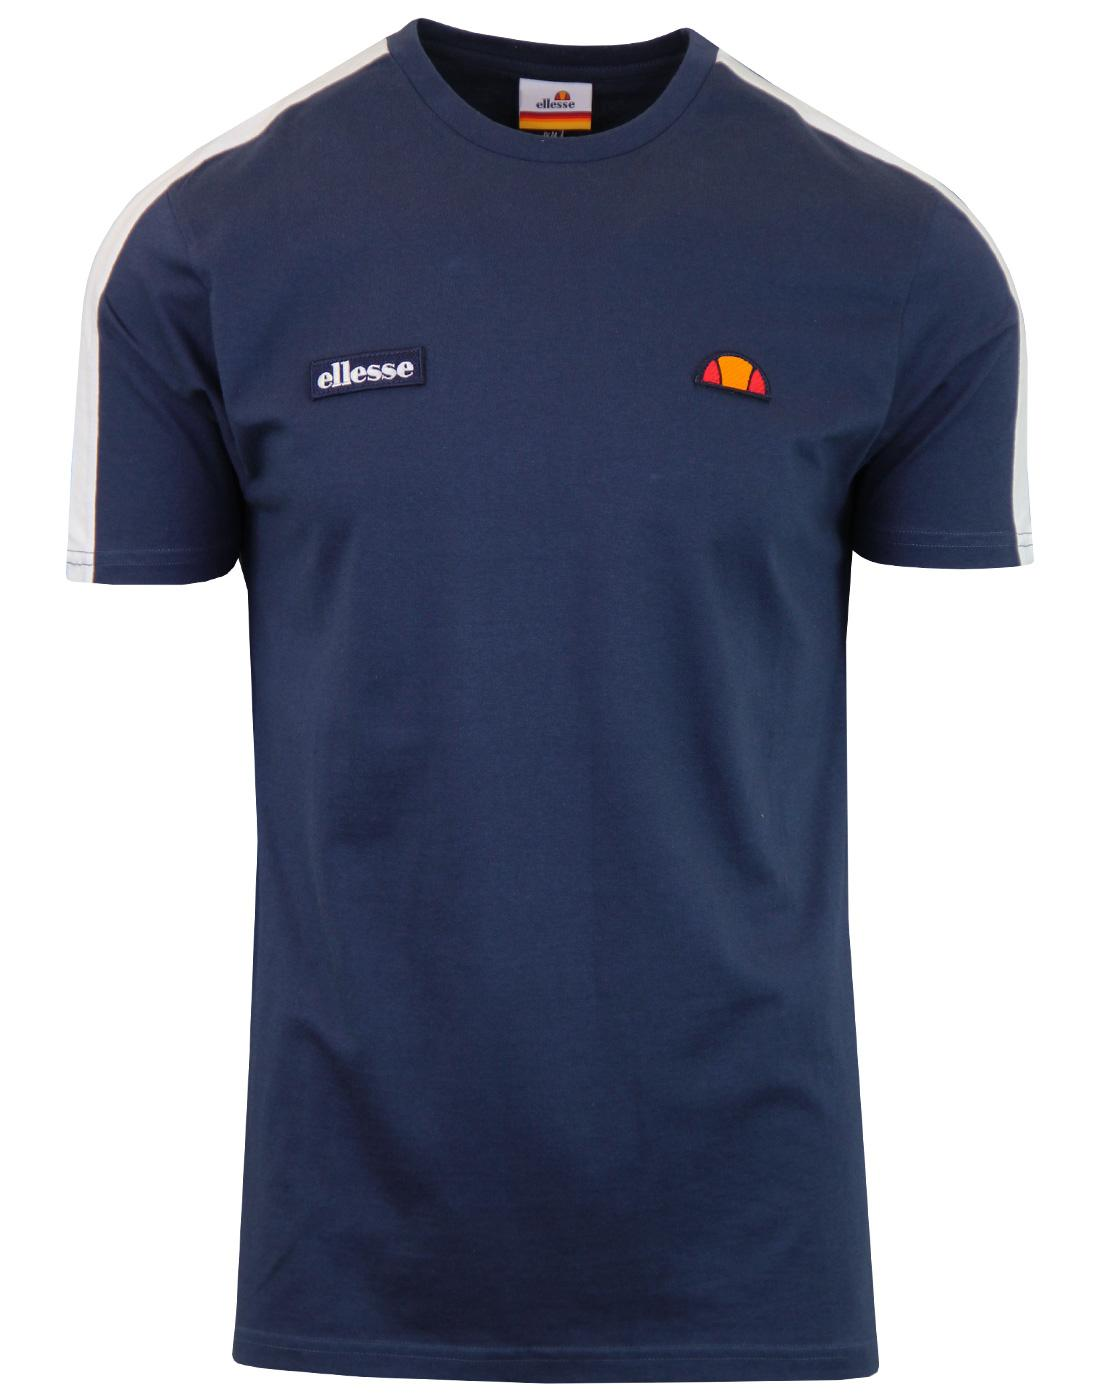 Crotone ELLESSE Retro 80s Applique Logo T-shirt DB